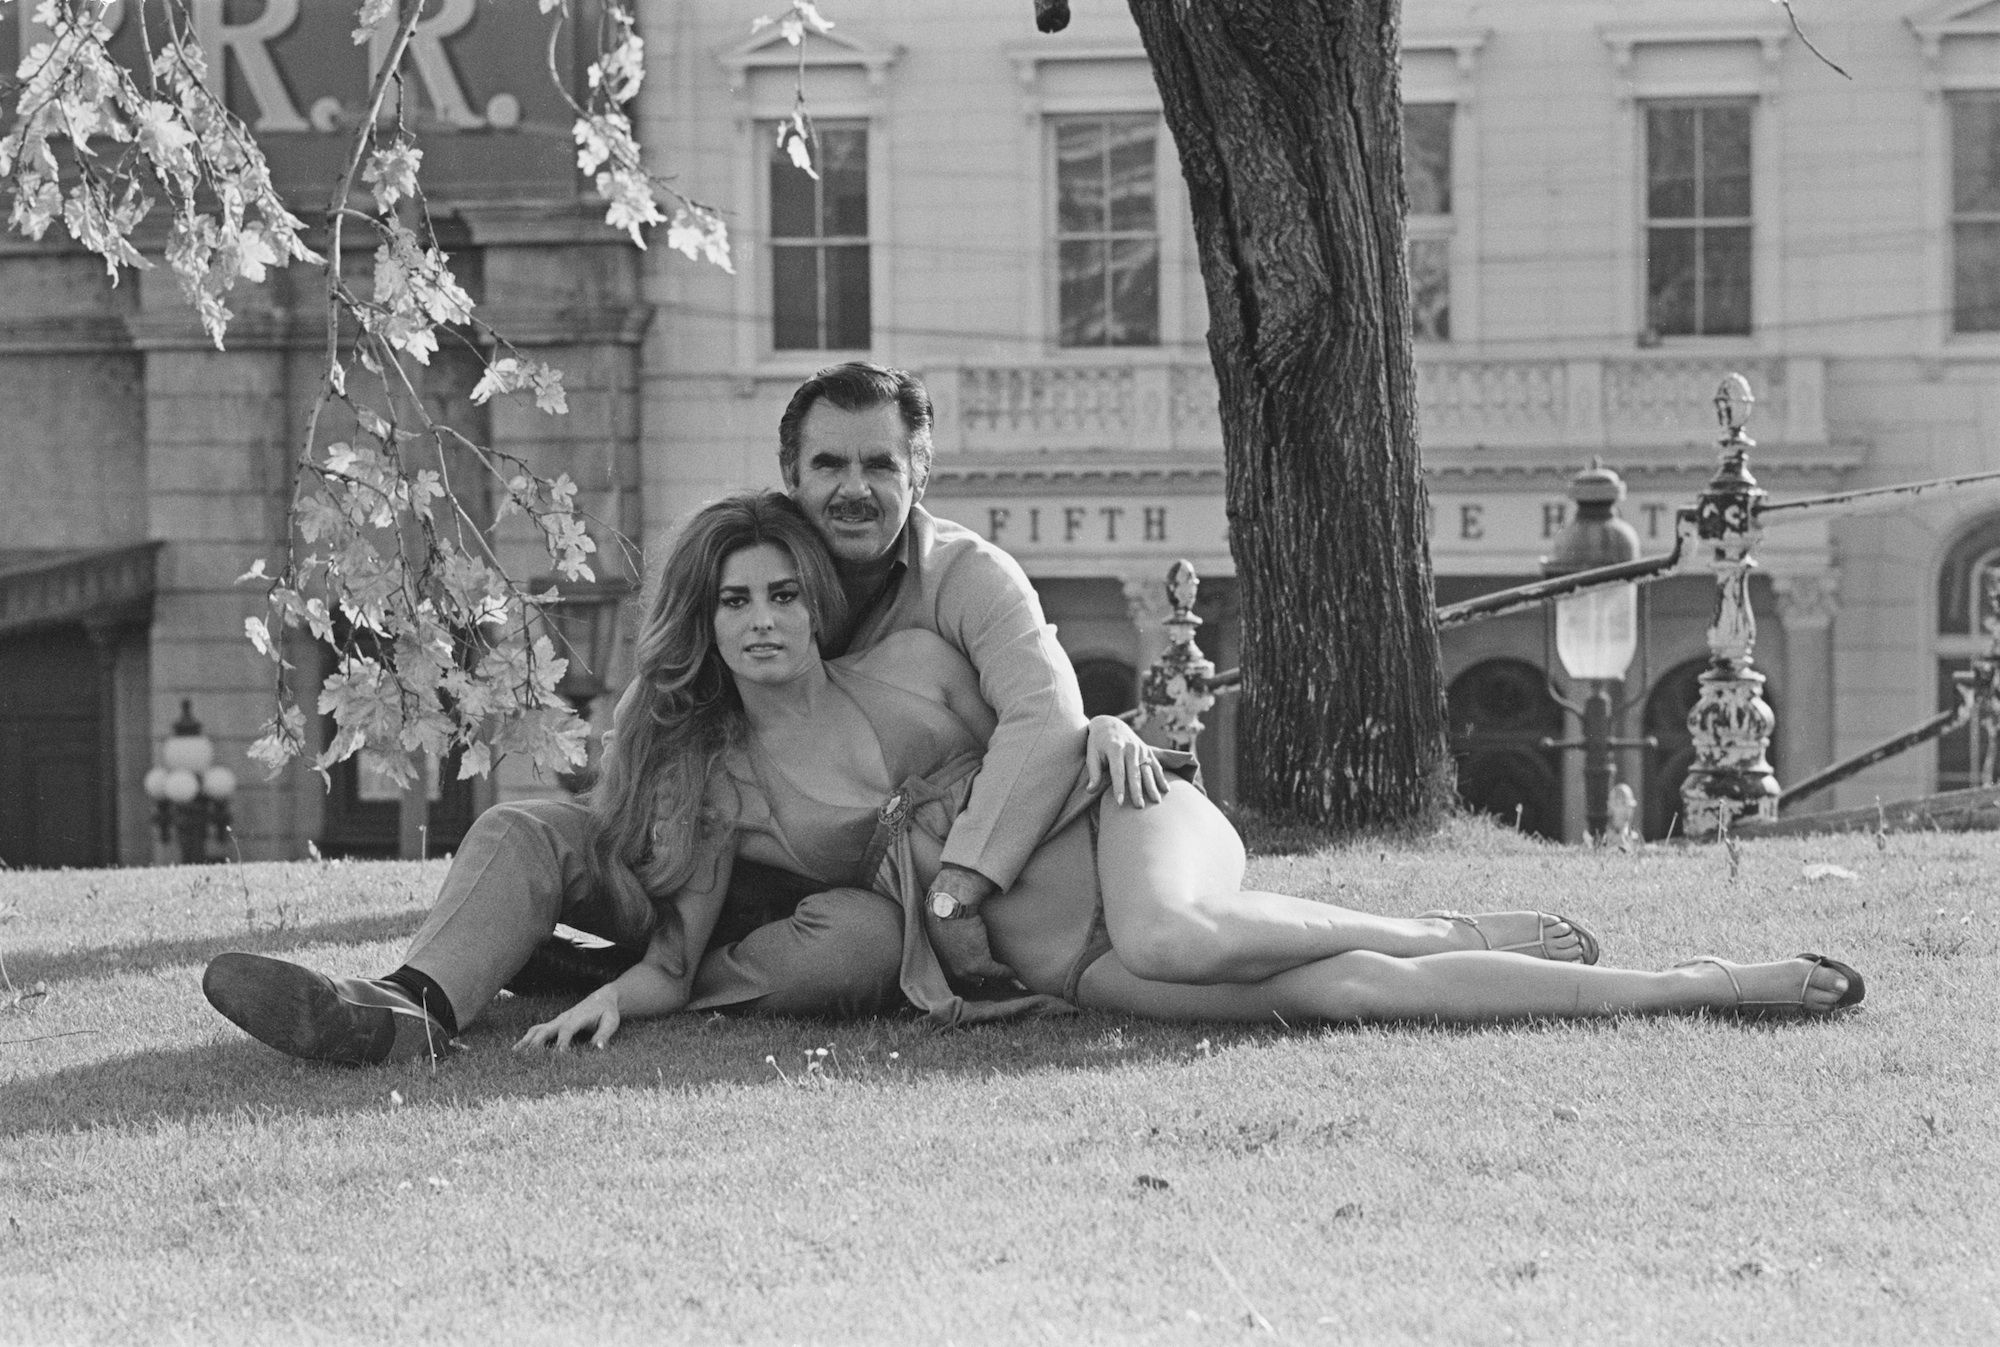 American film director and producer Russ Meyer (1922 - 2004) with his fiancee, actress Edie Williams, New York City, USA, 4th